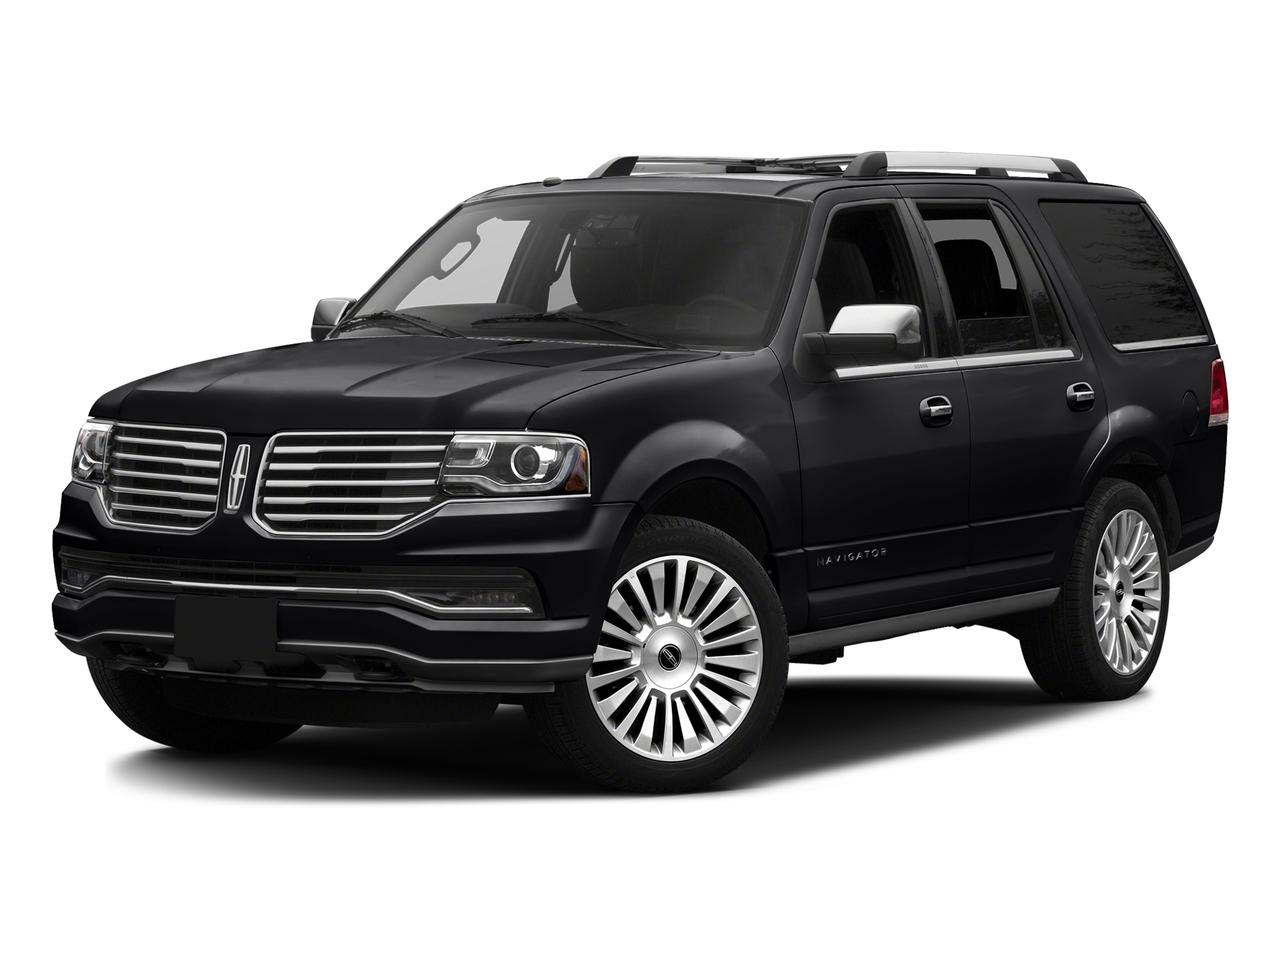 2017 LINCOLN Navigator Vehicle Photo in Concord, NC 28027